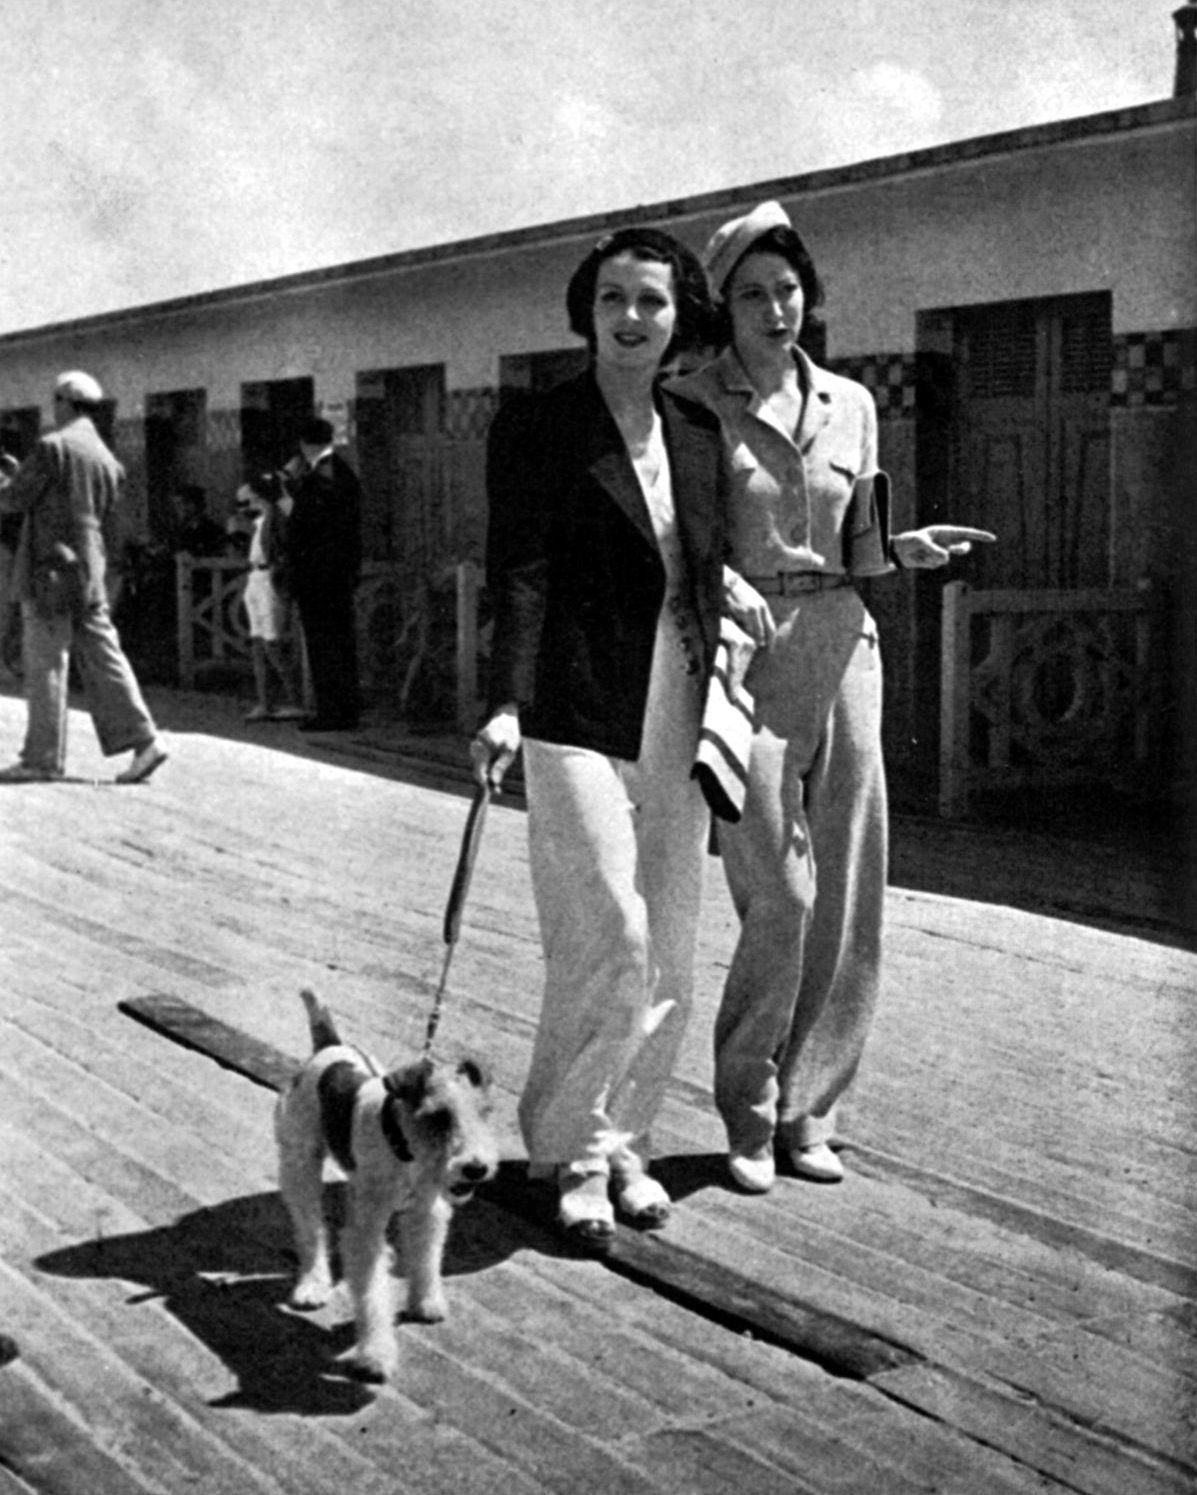 travel nostalgia - the 1920s & 1930s revisted: Dogs Take Lead In Deauville